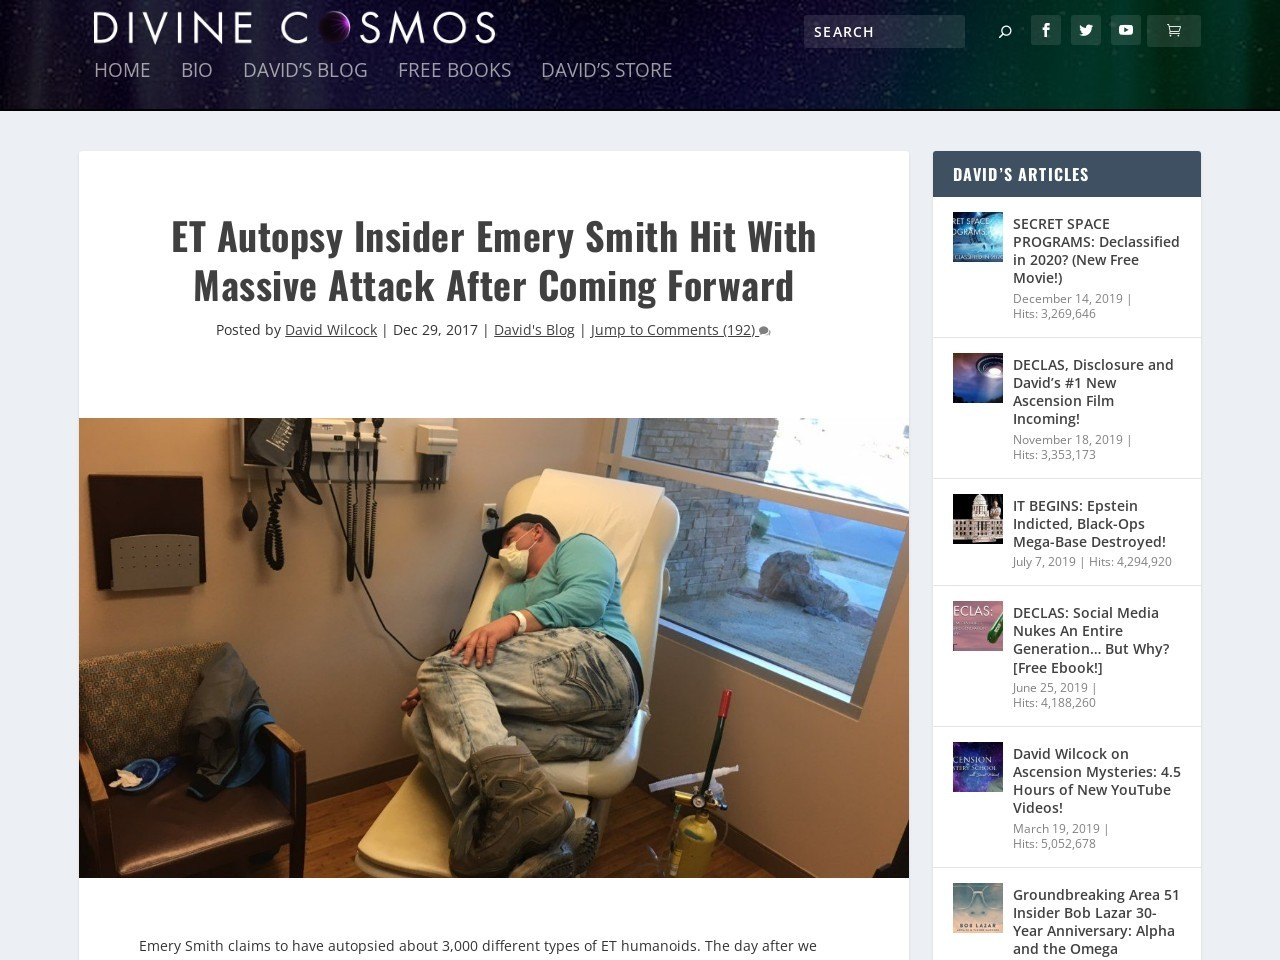 ET Autopsy Insider Emery Smith Hit With Massive Attack After Coming Forward